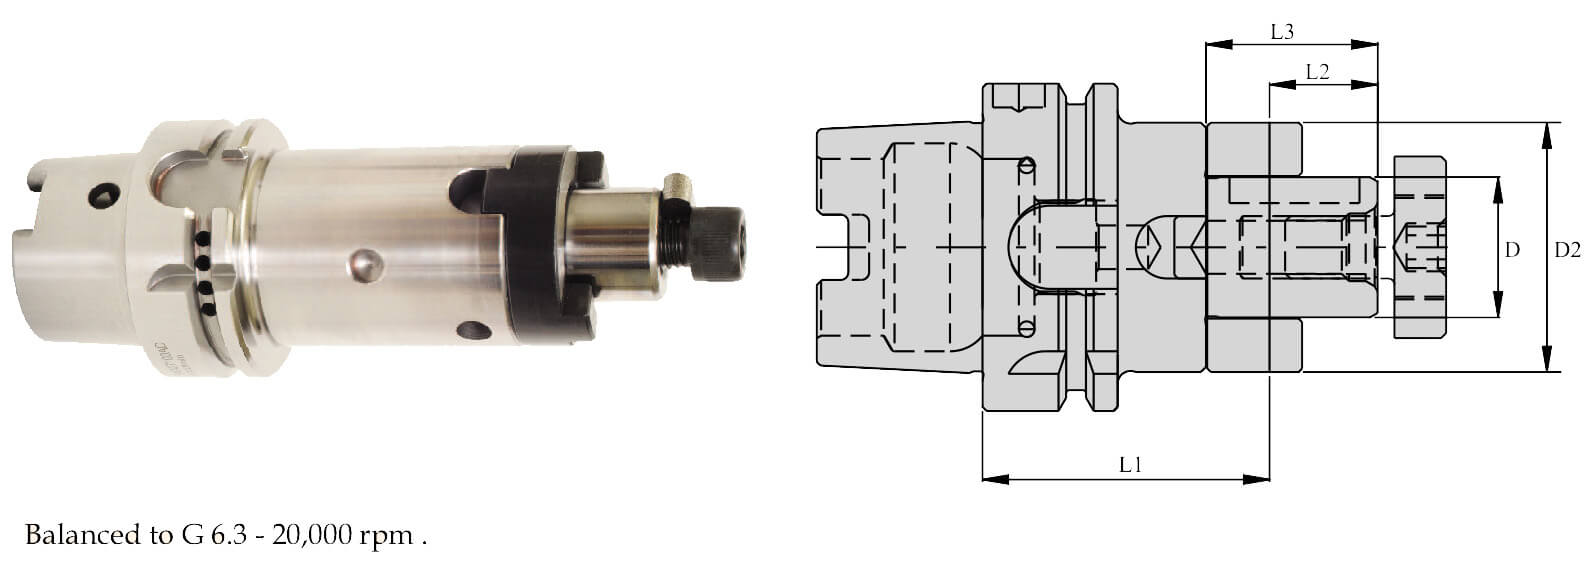 HSK-A 100 CSMA32 100 CombiShell Mill Adaptor (Balanced to G 6.3 20000 RPM) (DIN 6358)